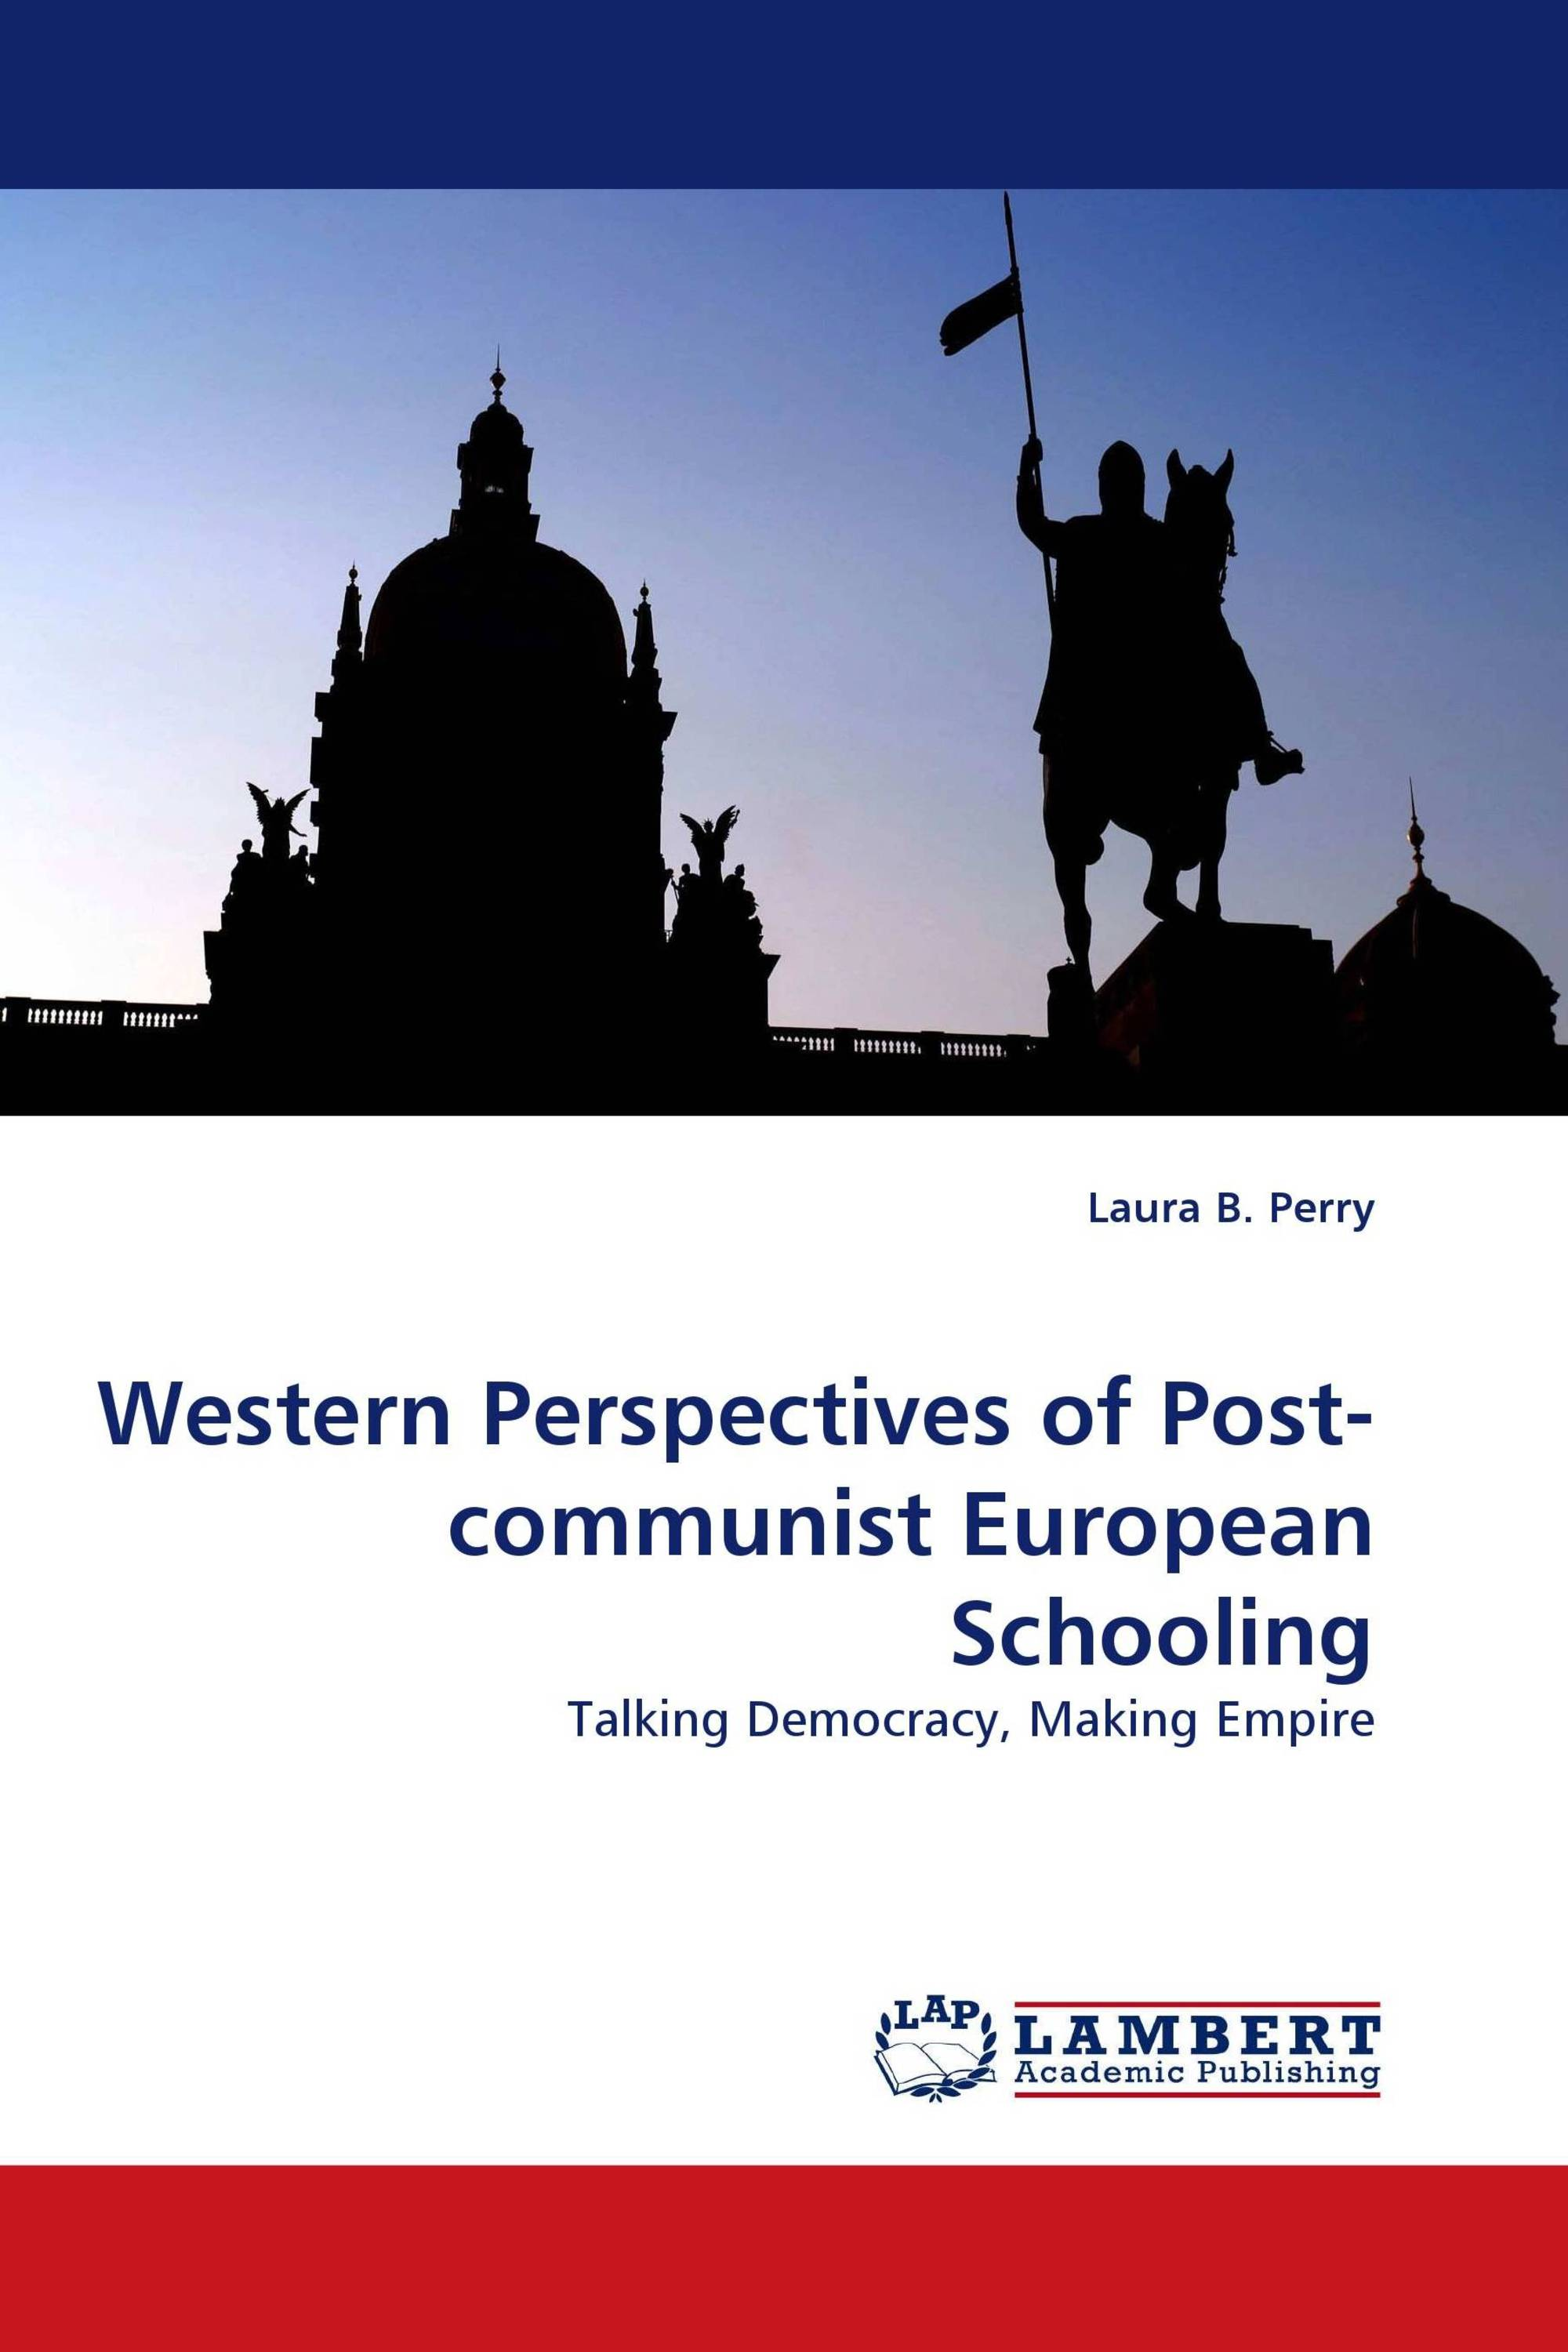 Western Perspectives of Post-communist European Schooling